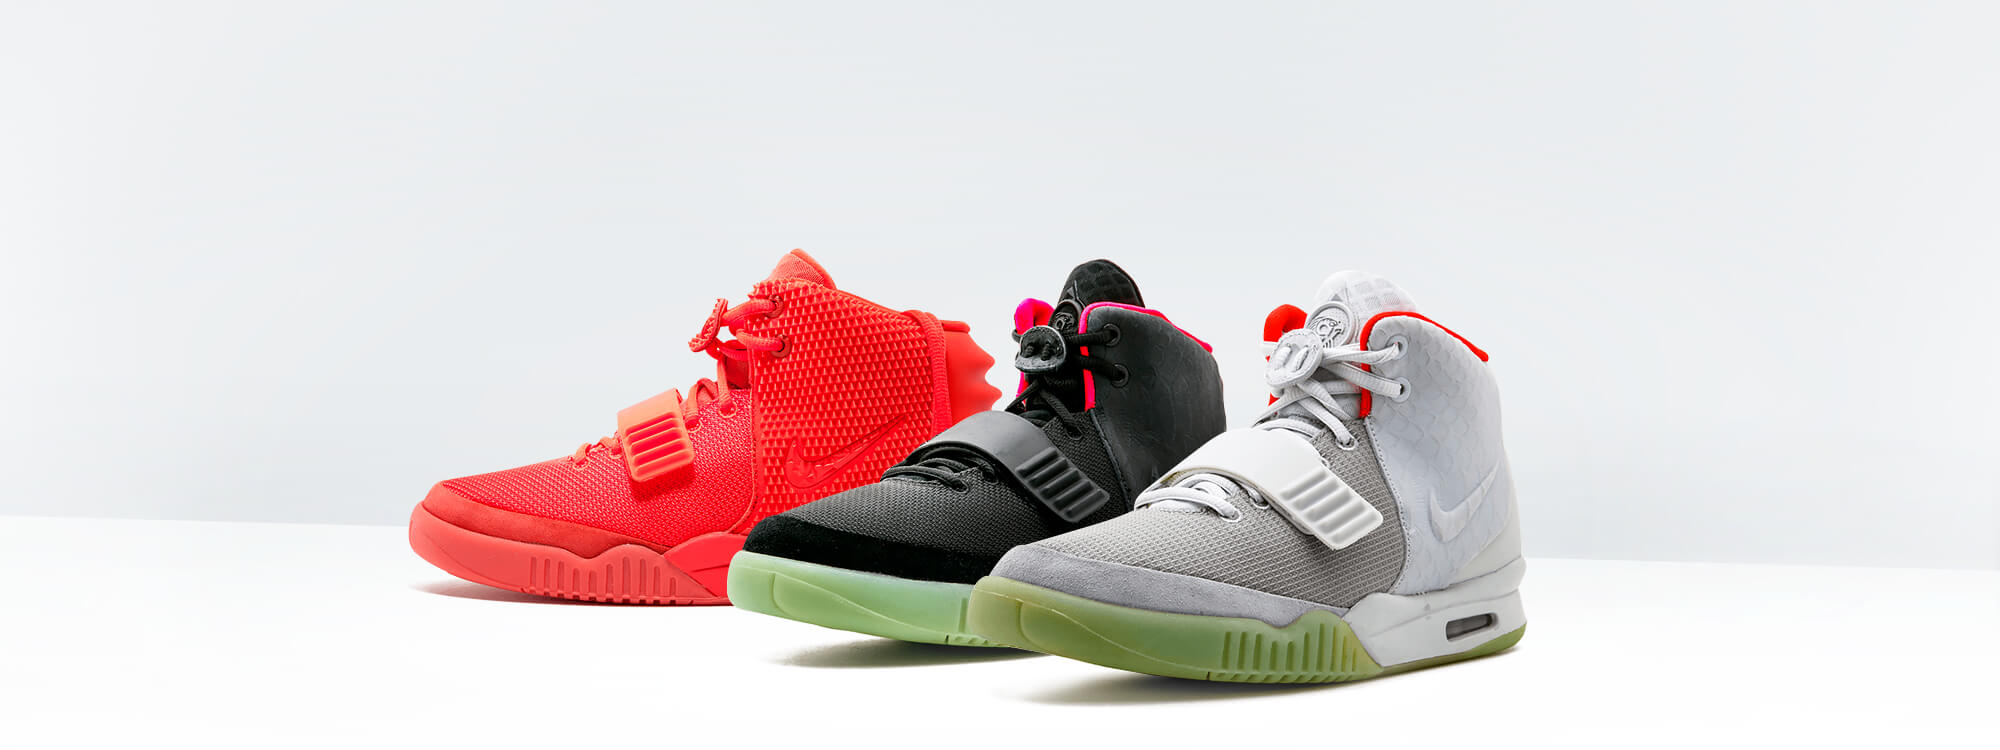 Nike Air Yeezy    must-have yoga motivation